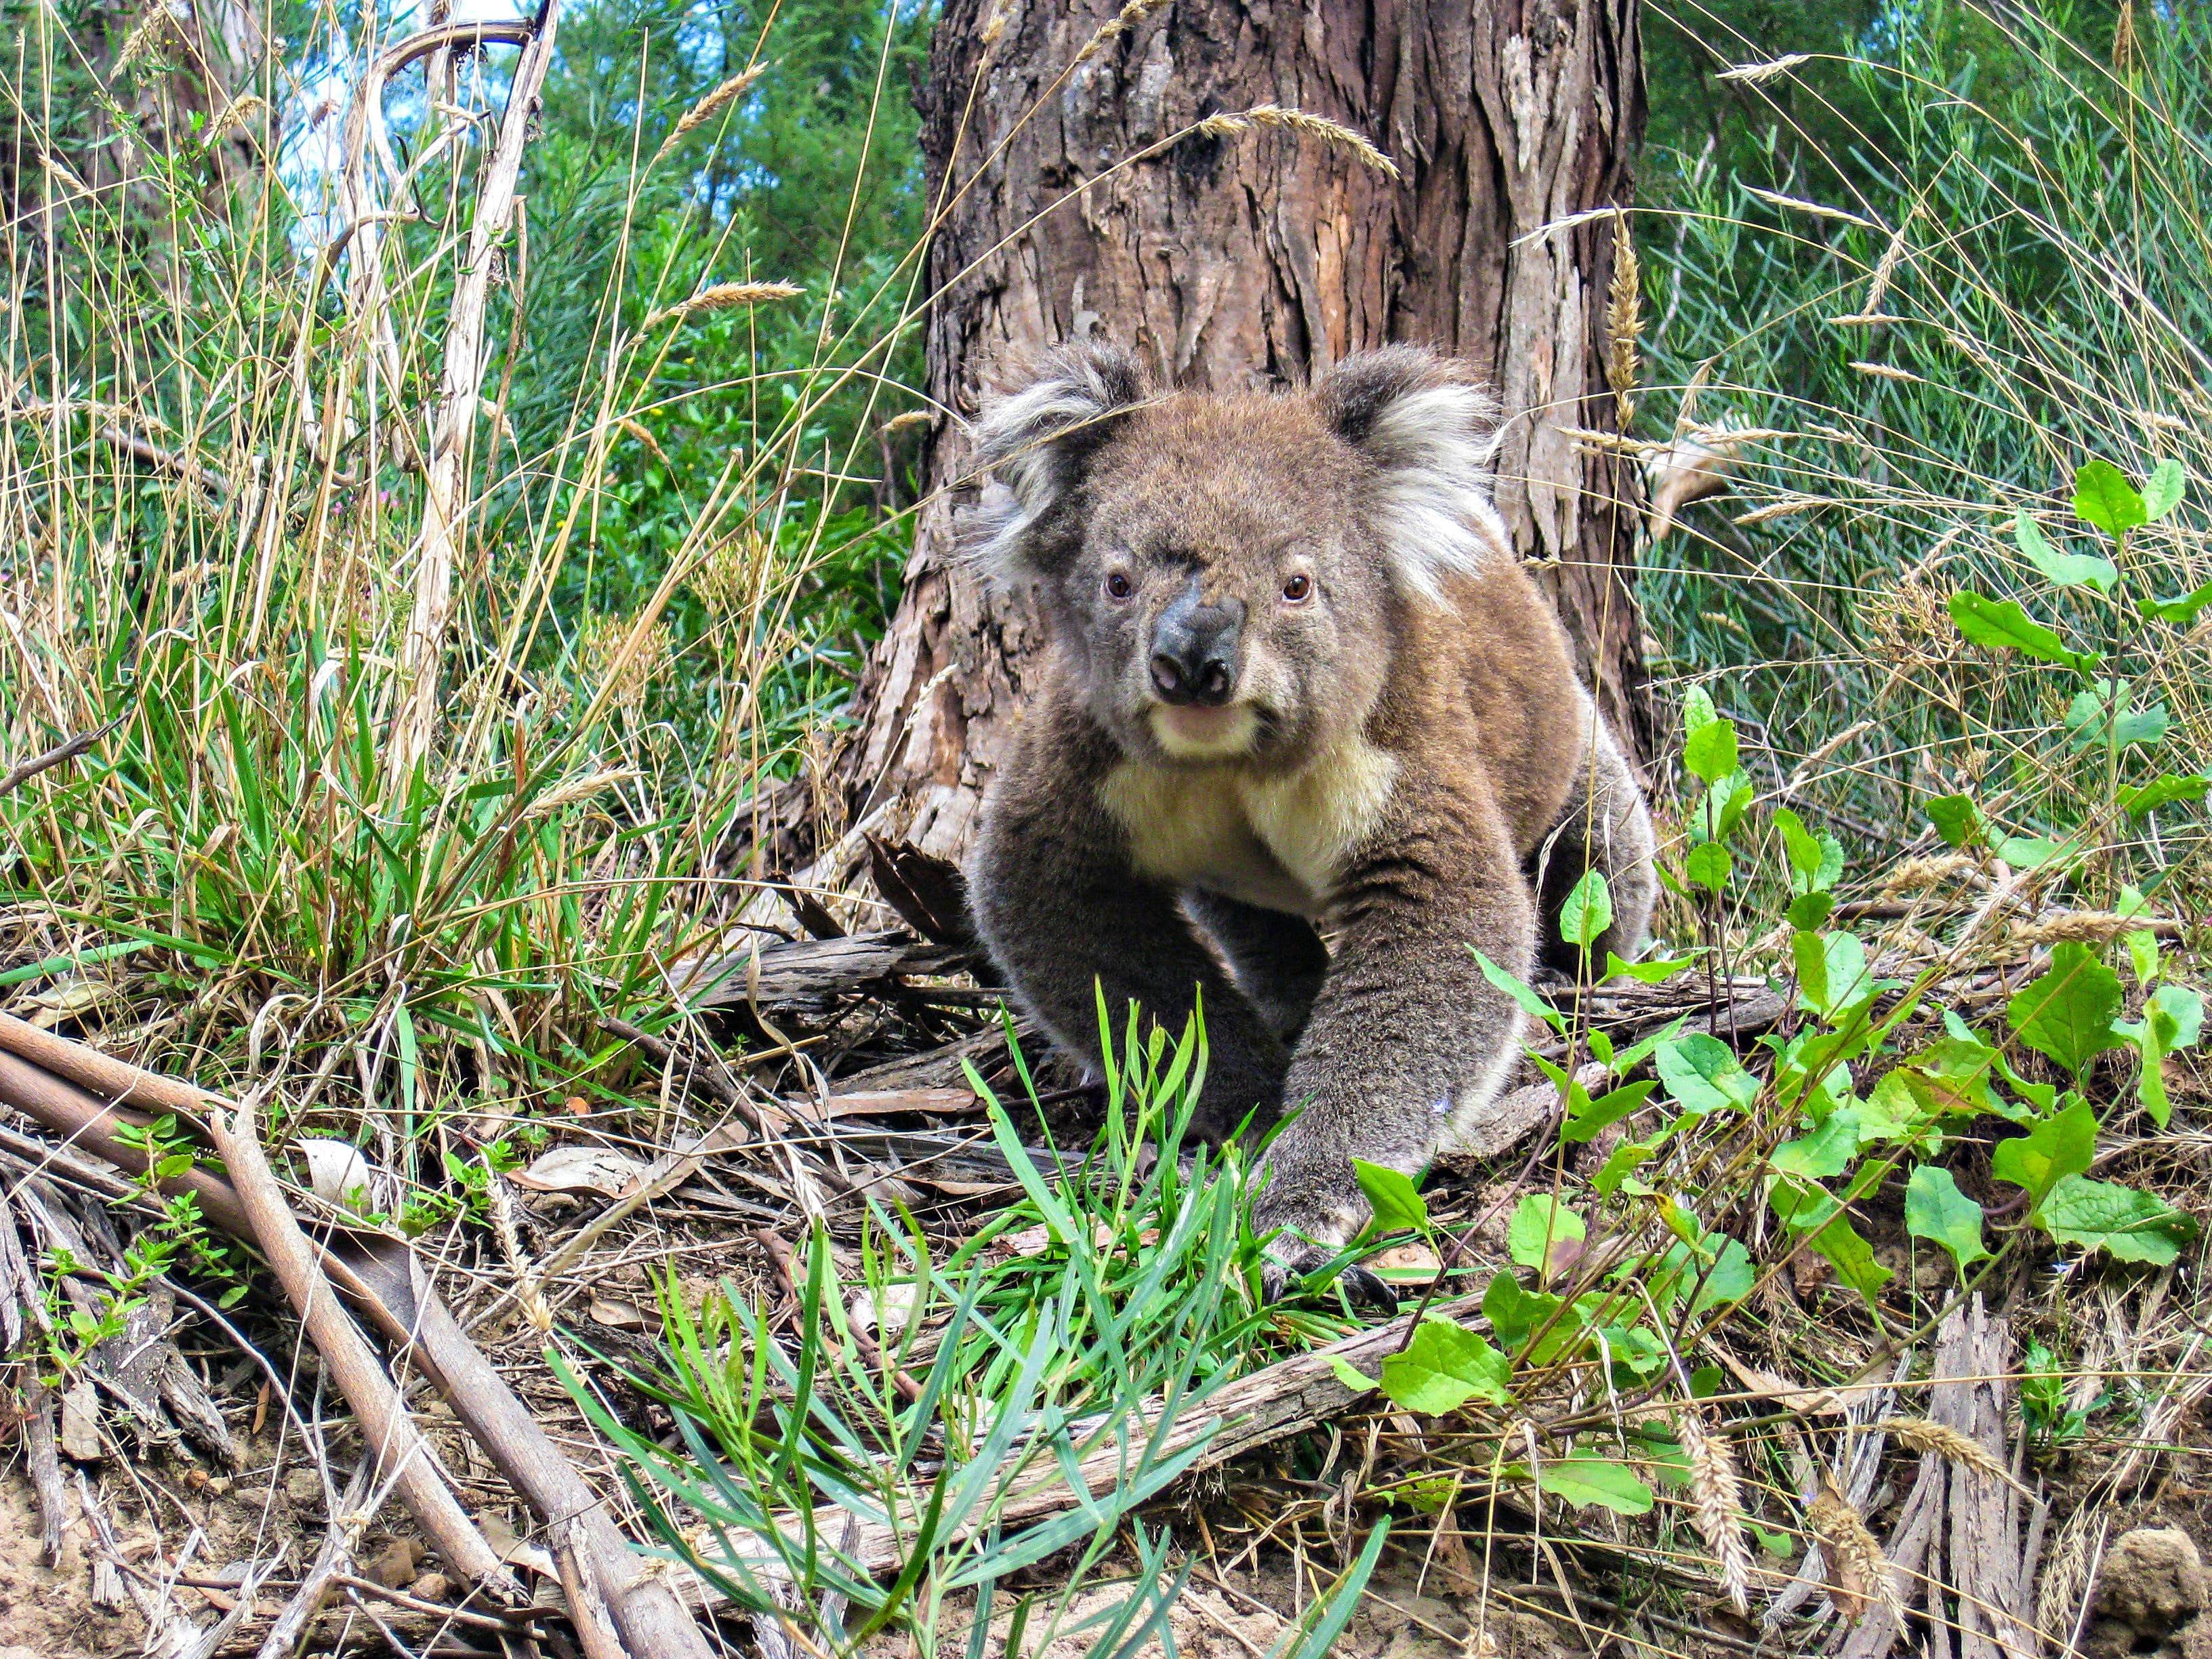 A wild koala walking and looking at the camera in South Australia